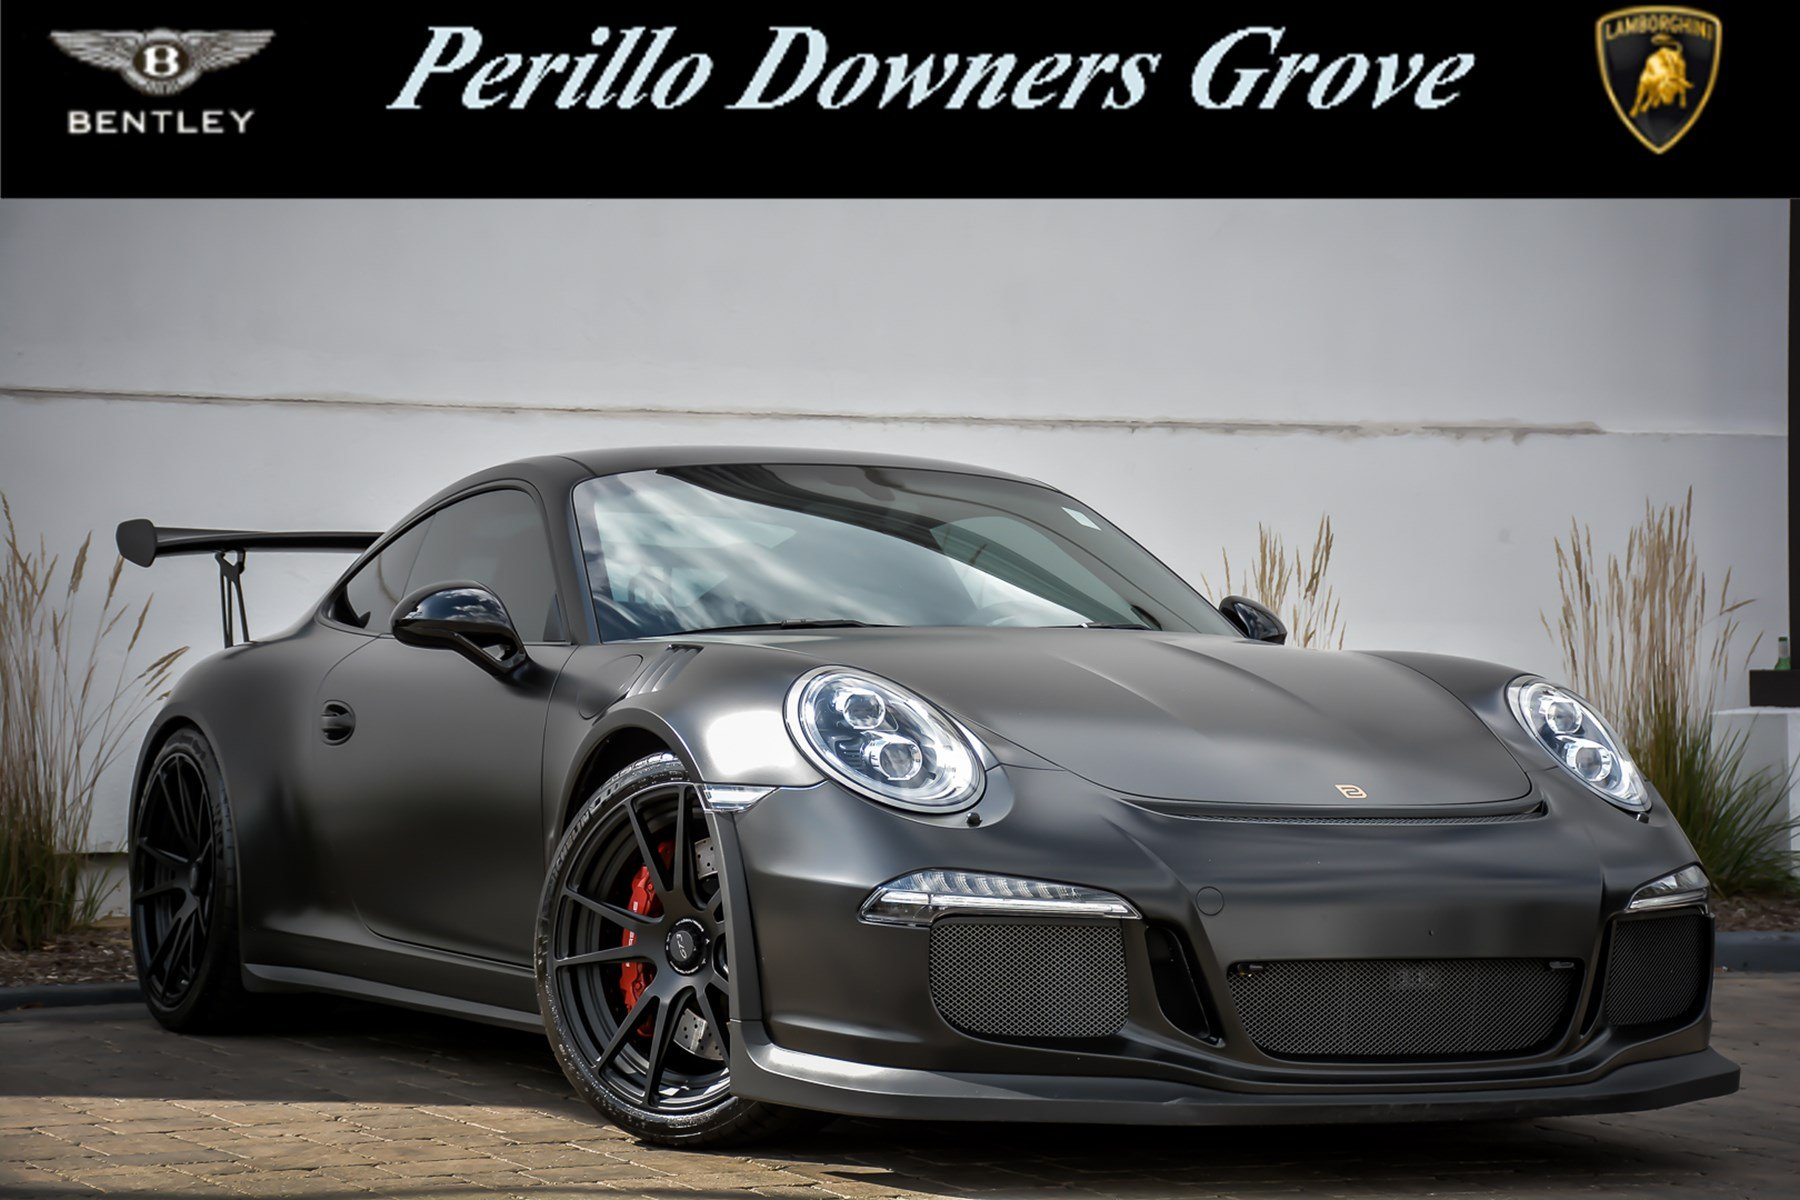 Pre Owned 2015 Porsche 911 GT3 RS Conversion 2dr Car in Downers